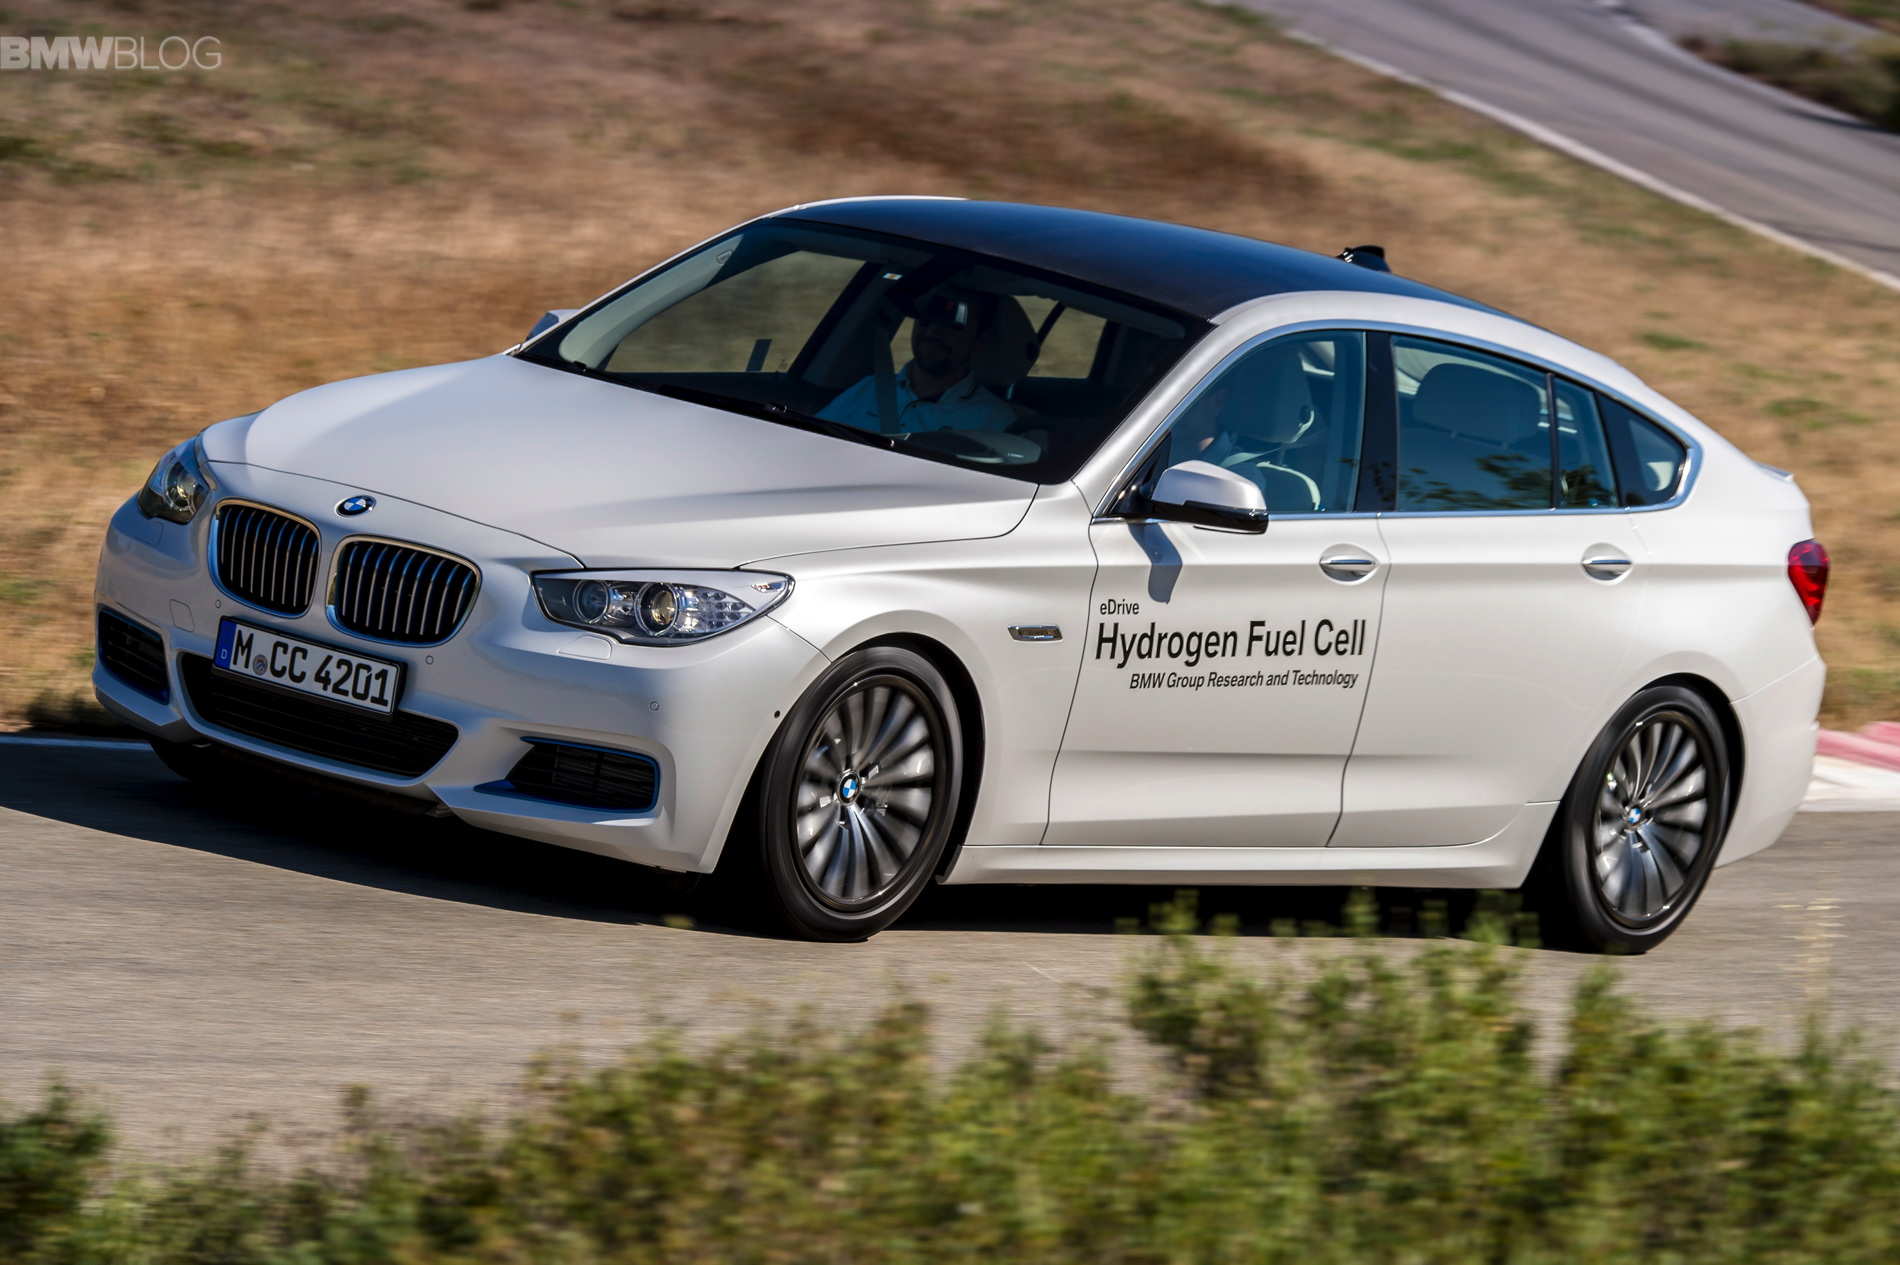 BMW 5 series gt hydrogen fuel cell images 24